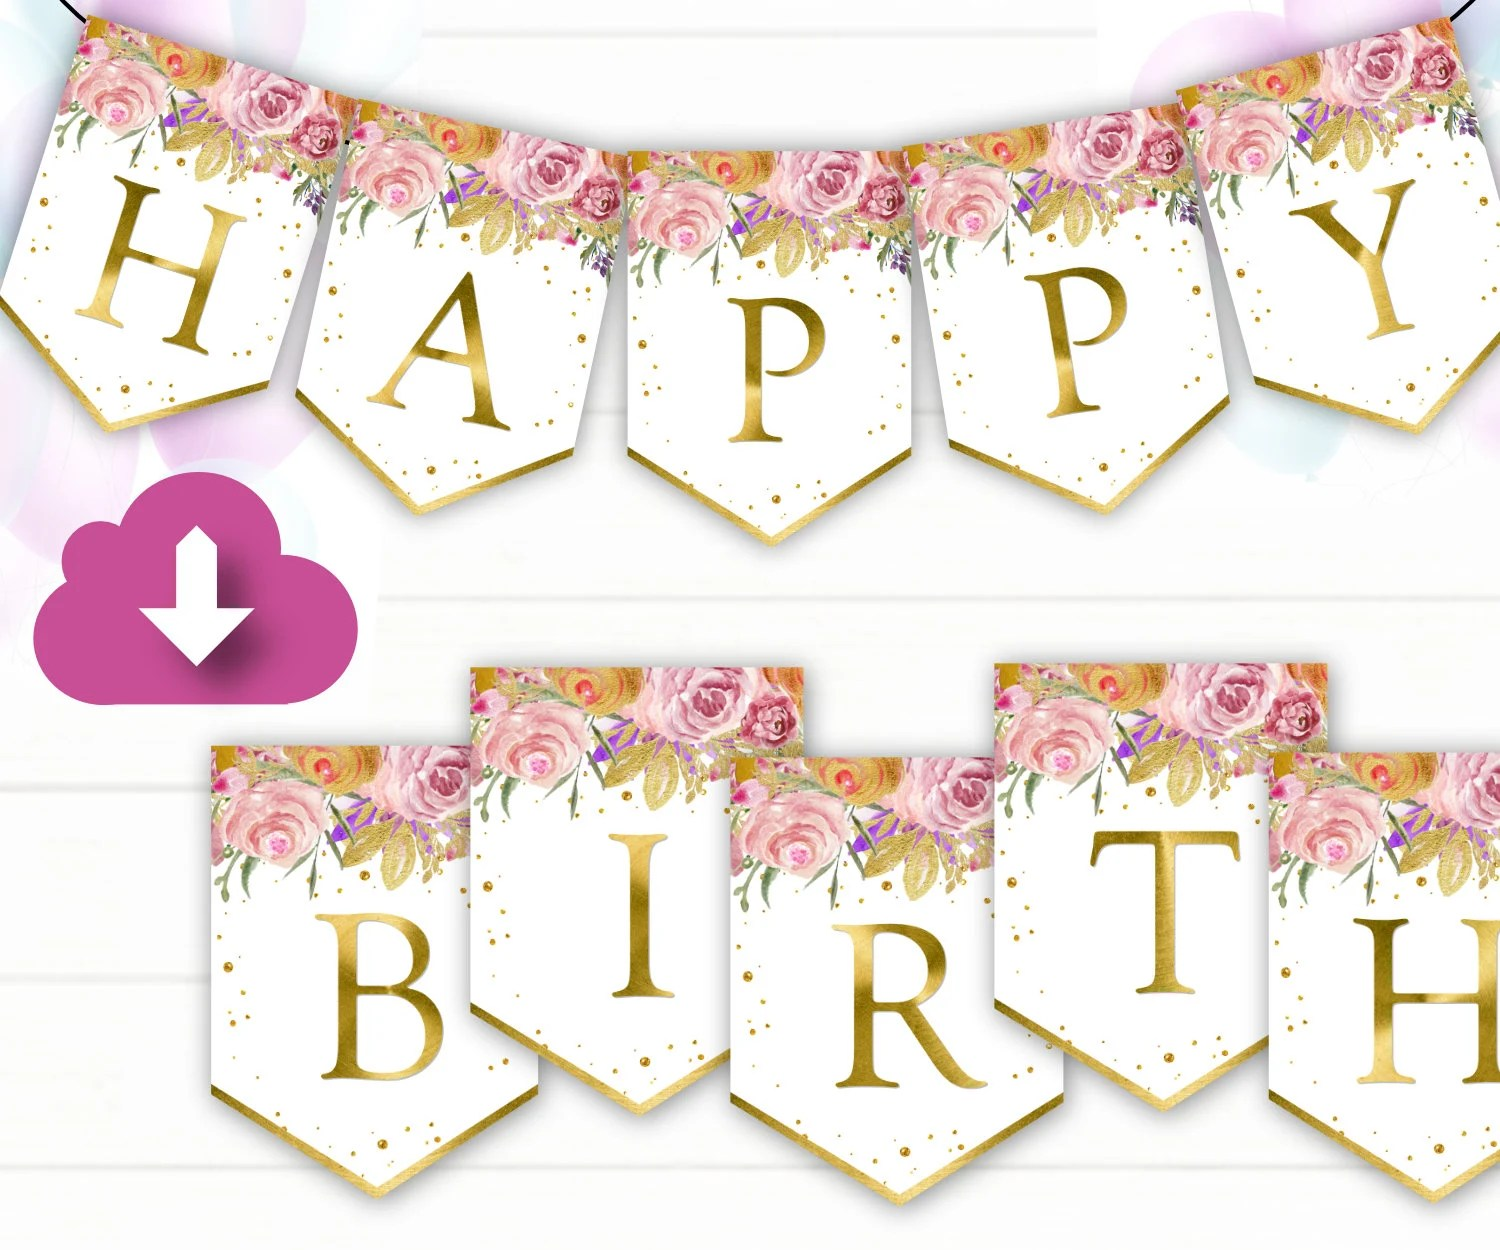 P44 Instant Download Floral Pink Gold Birthday Bunting 5x7 Birthday Garland Printable Happy Birthday Banner Garlands Flags Bunting Party Decor